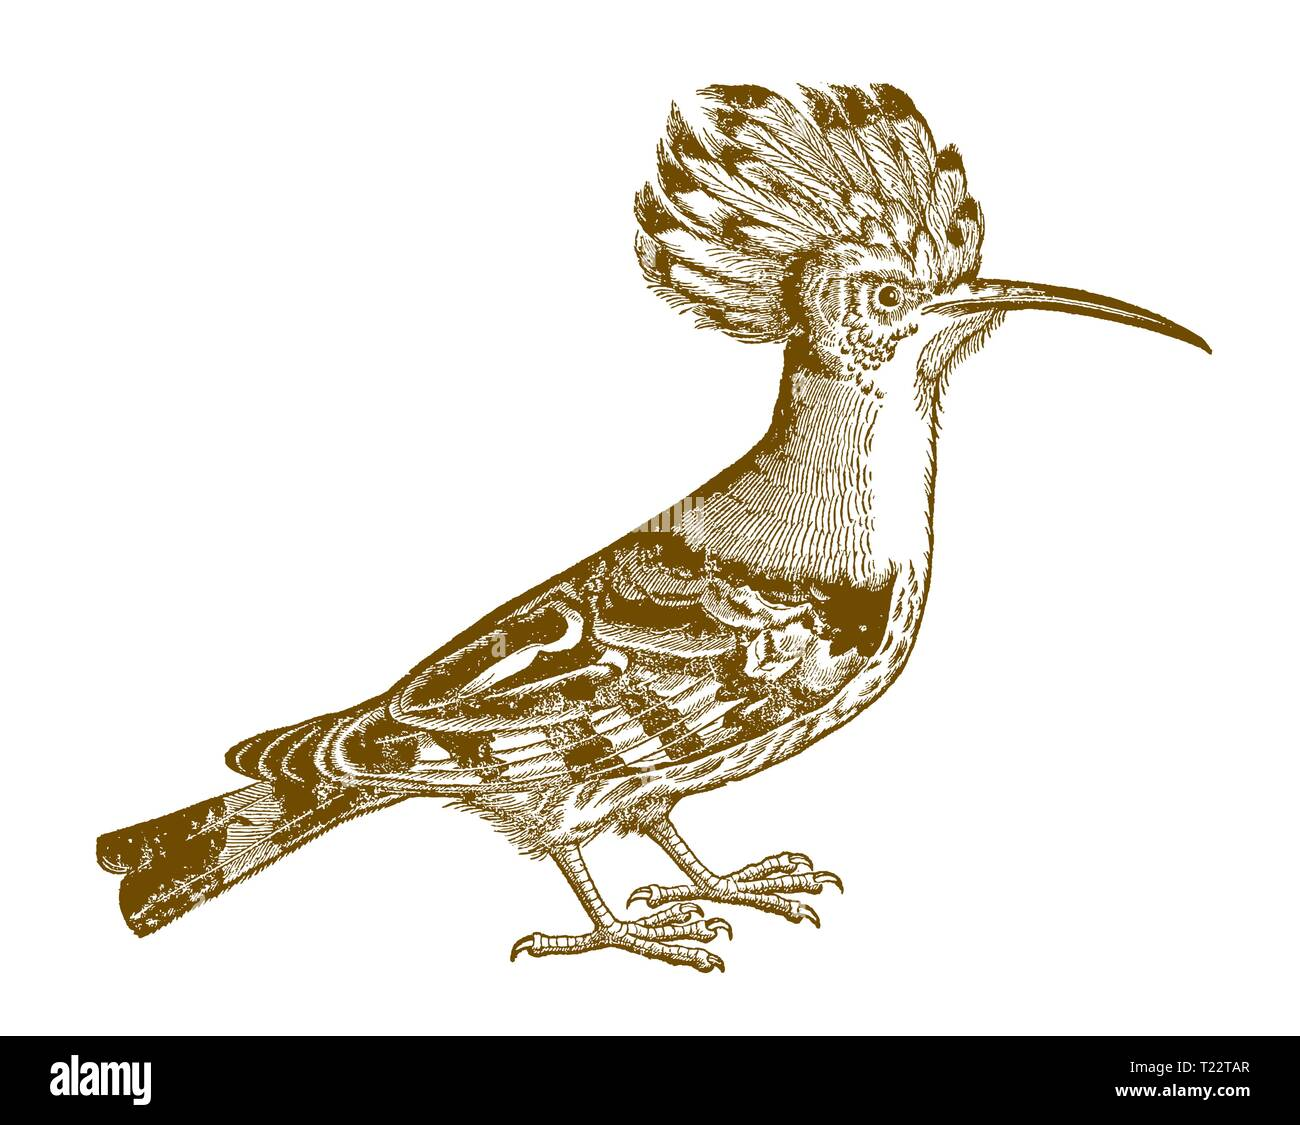 Eurasian hoopoe (upupa epops) in side view. Illustration after a historic woodcut from the 16th century - Stock Image